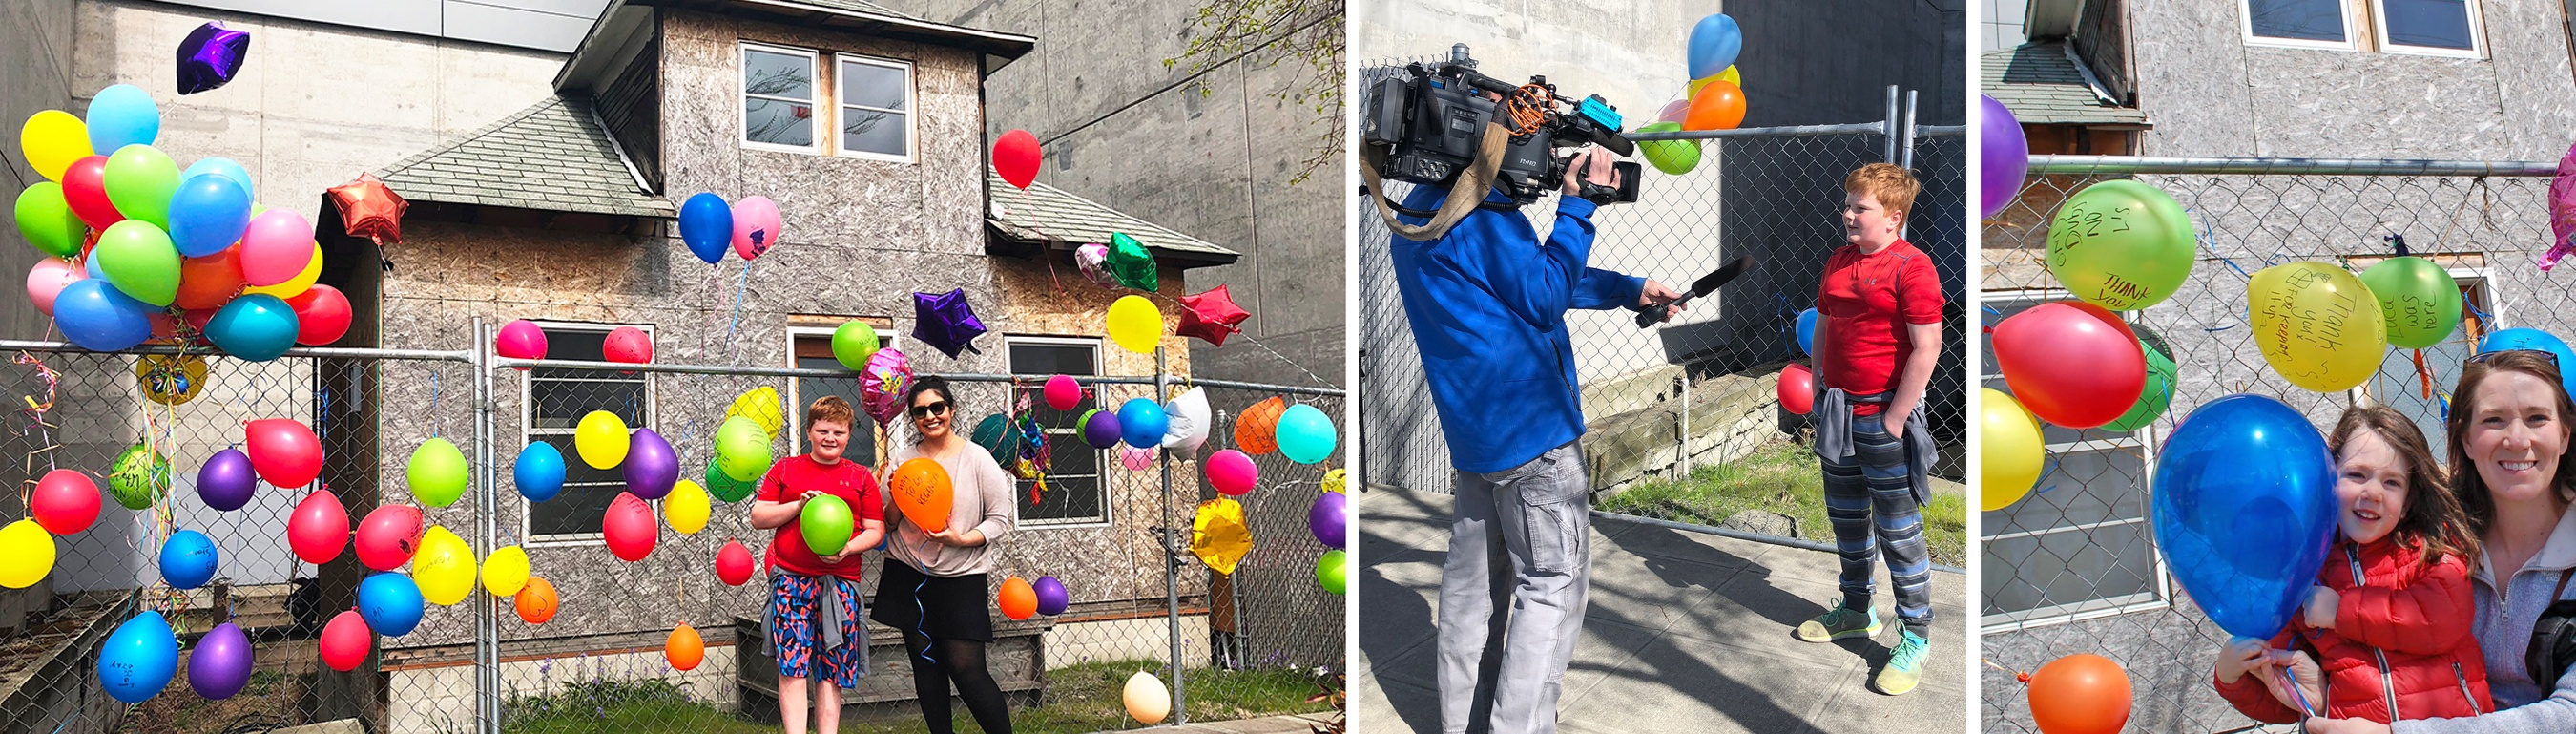 highlights from No Demo Day with bright colorful balloons and a child being interviewed.